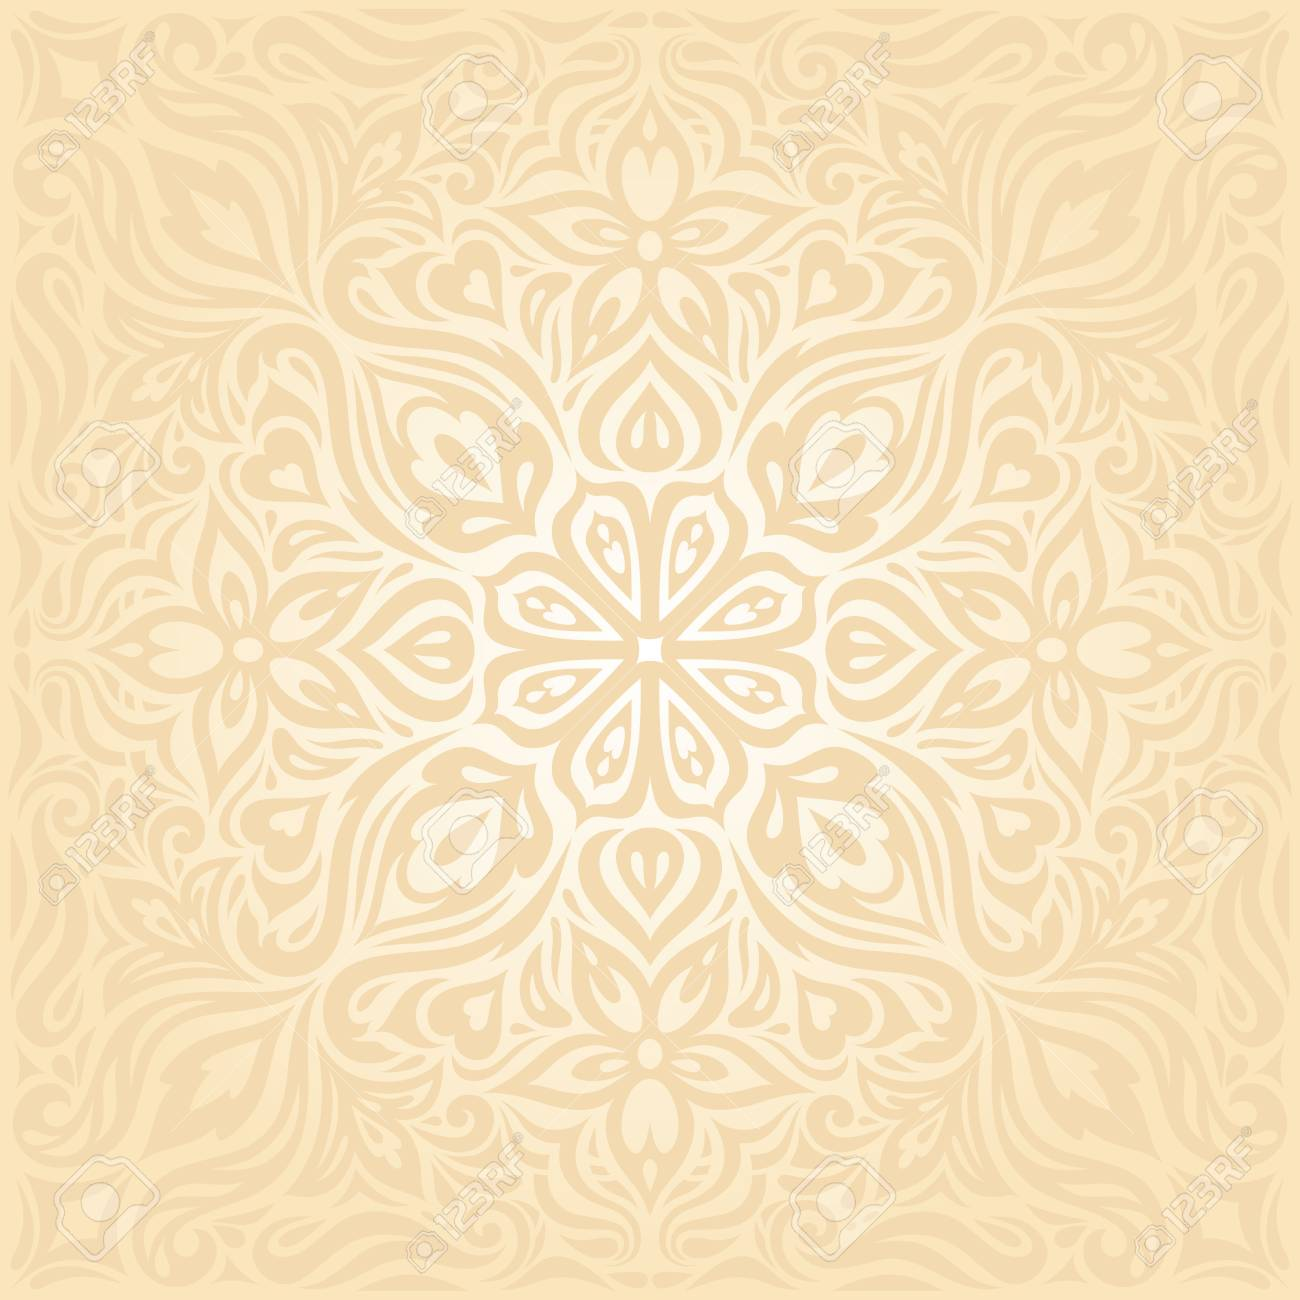 floral retro wedding pale peach wedding background mandala design royalty free cliparts vectors and stock illustration image 107452301 floral retro wedding pale peach wedding background mandala design